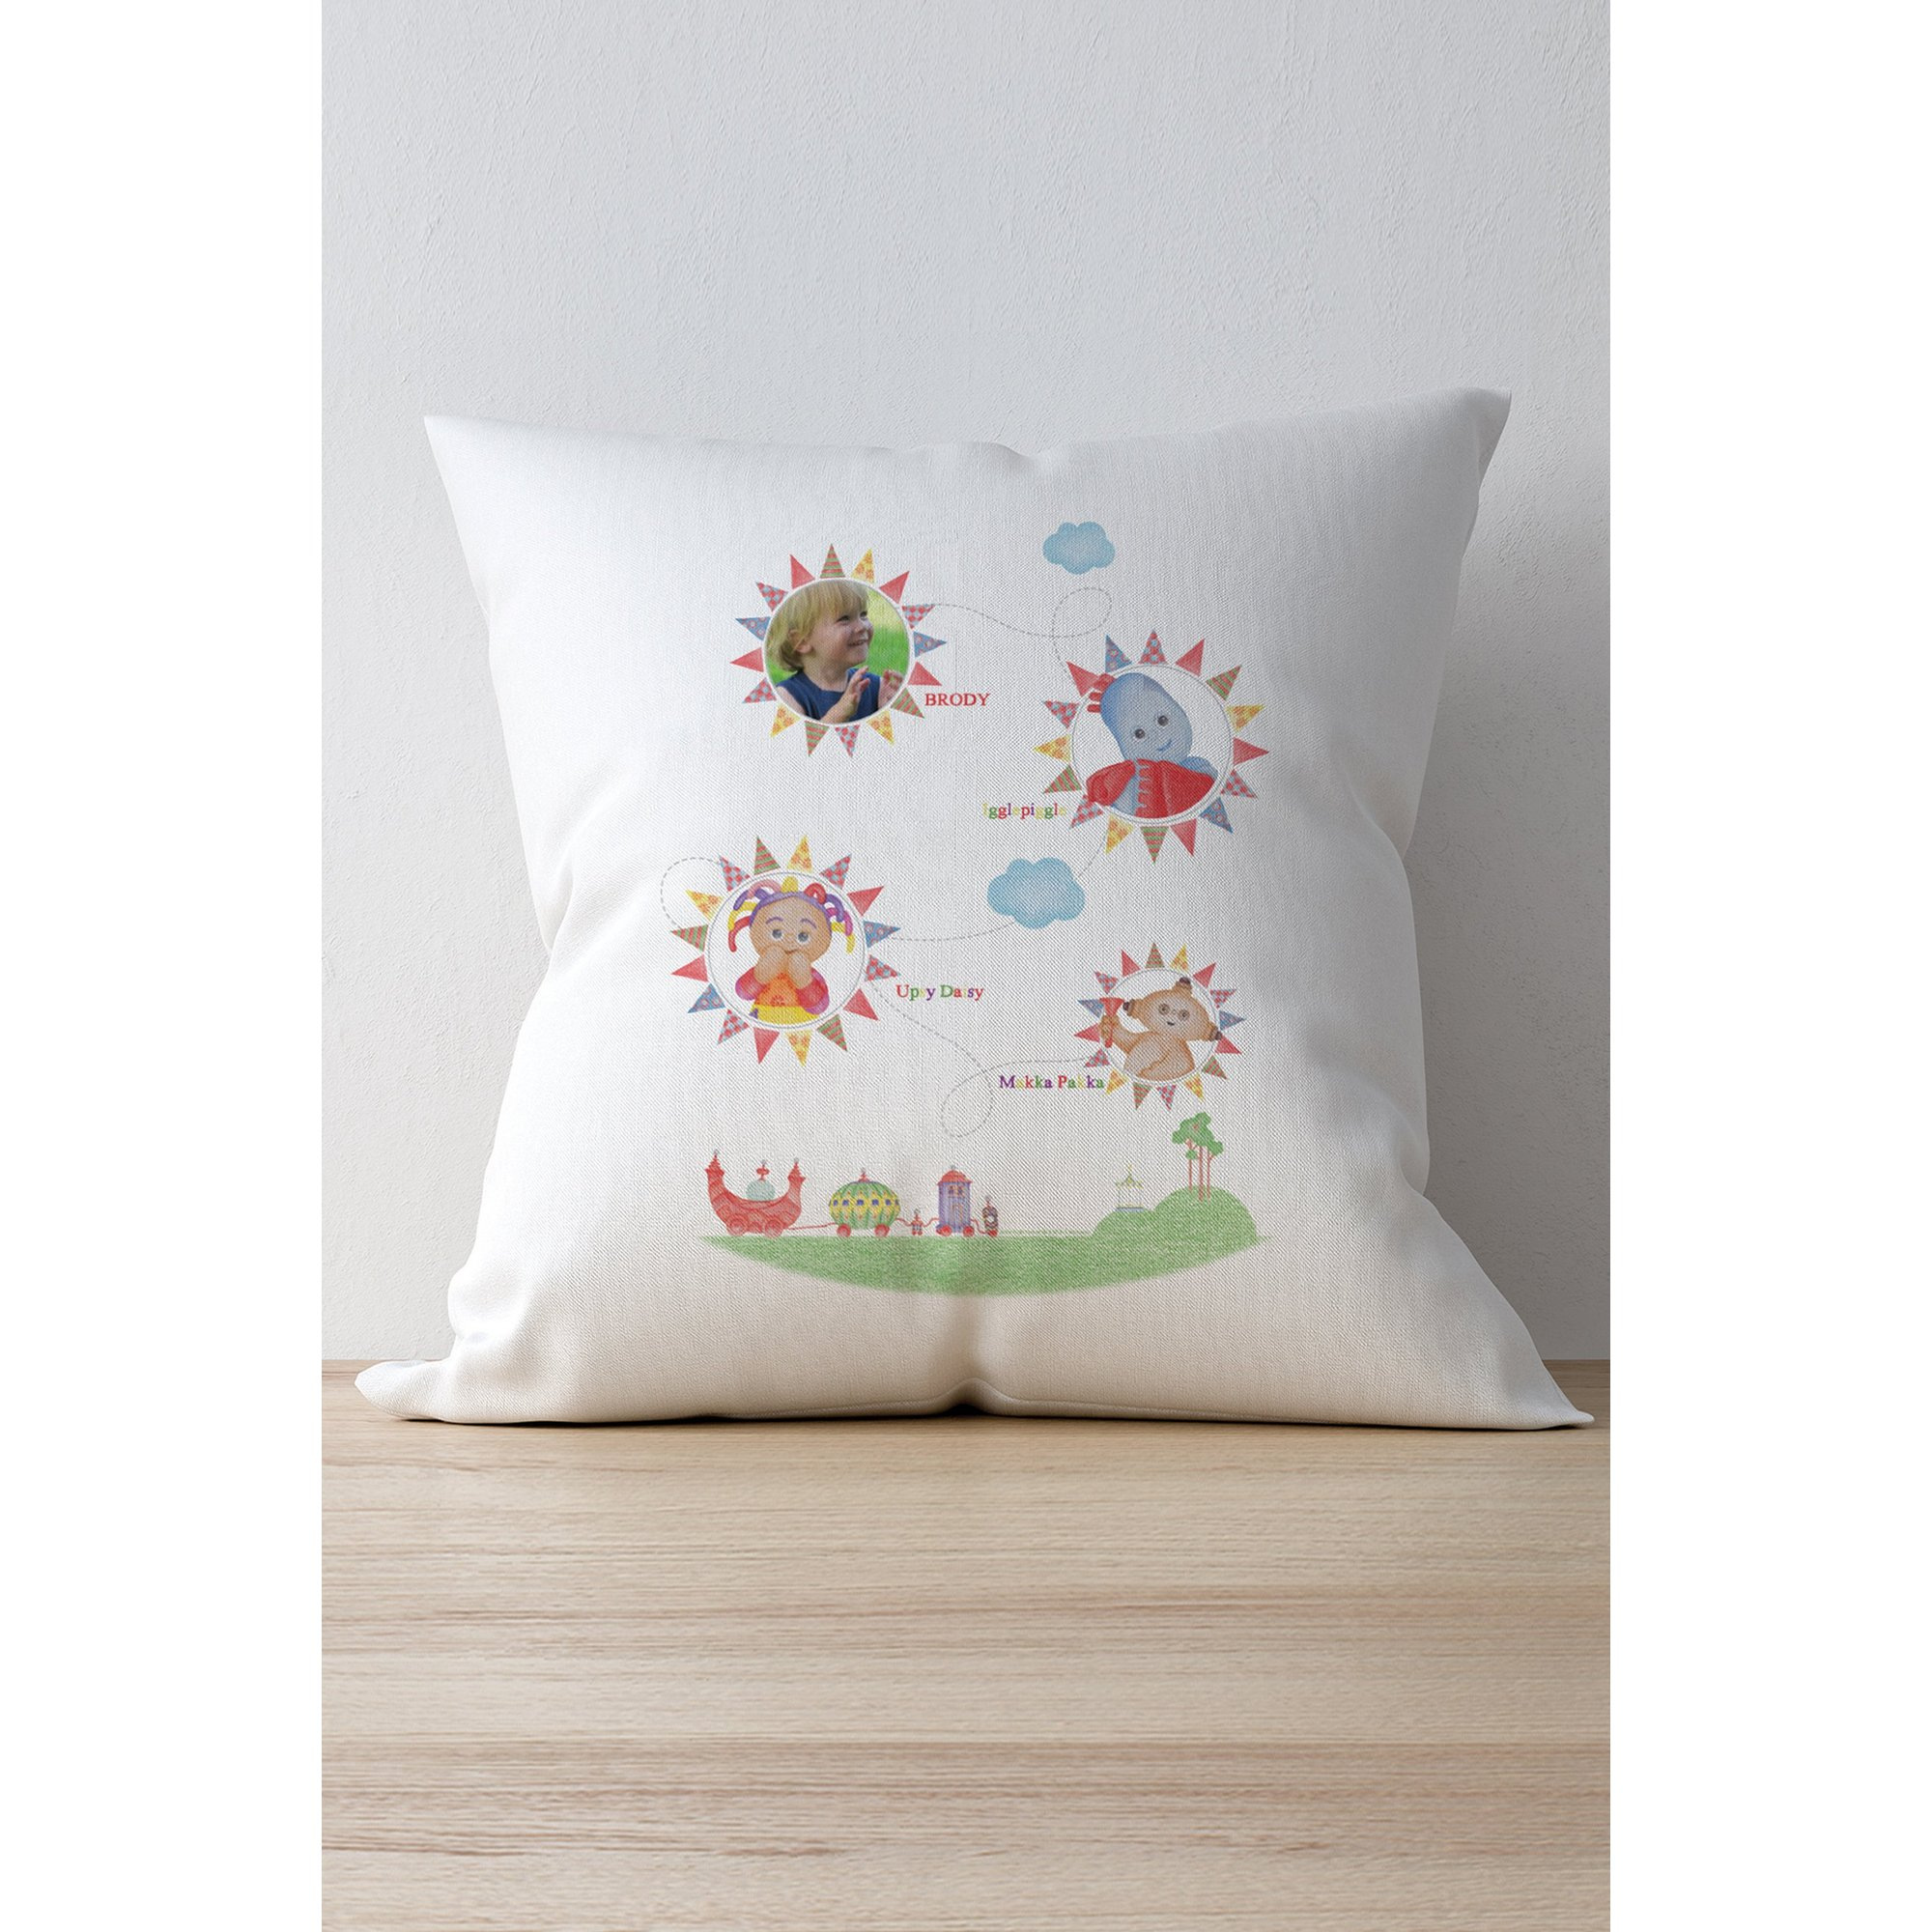 Image of In The Night Garden Colouring Book Photo Cushion